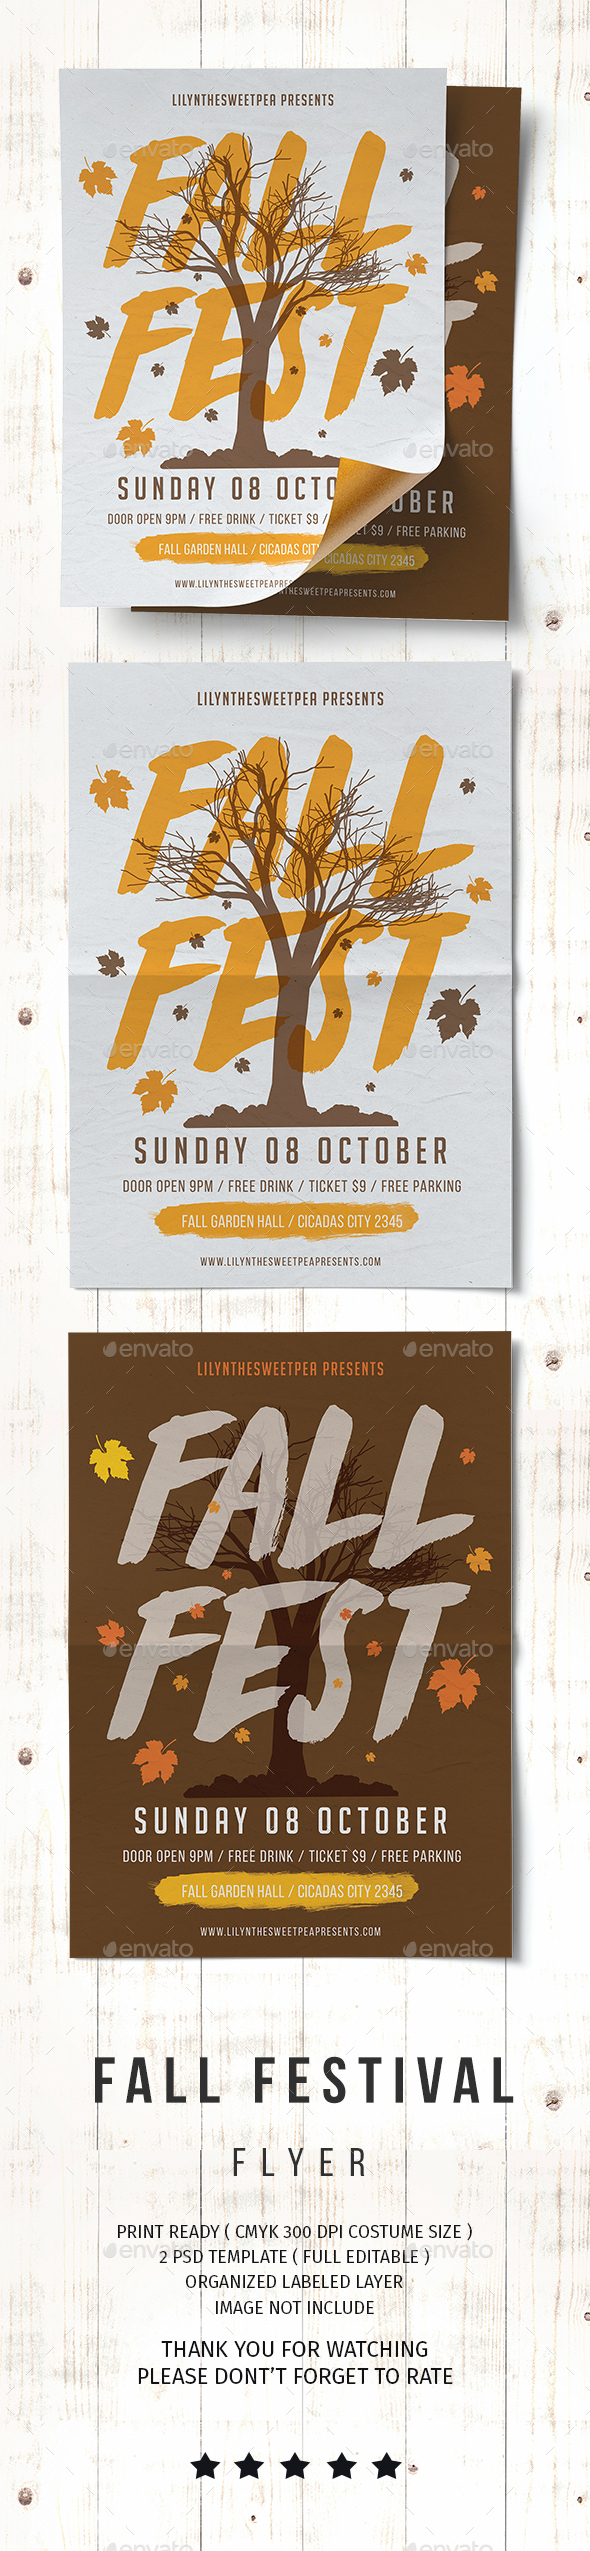 GraphicRiver Fall Fest Flyer 20508875